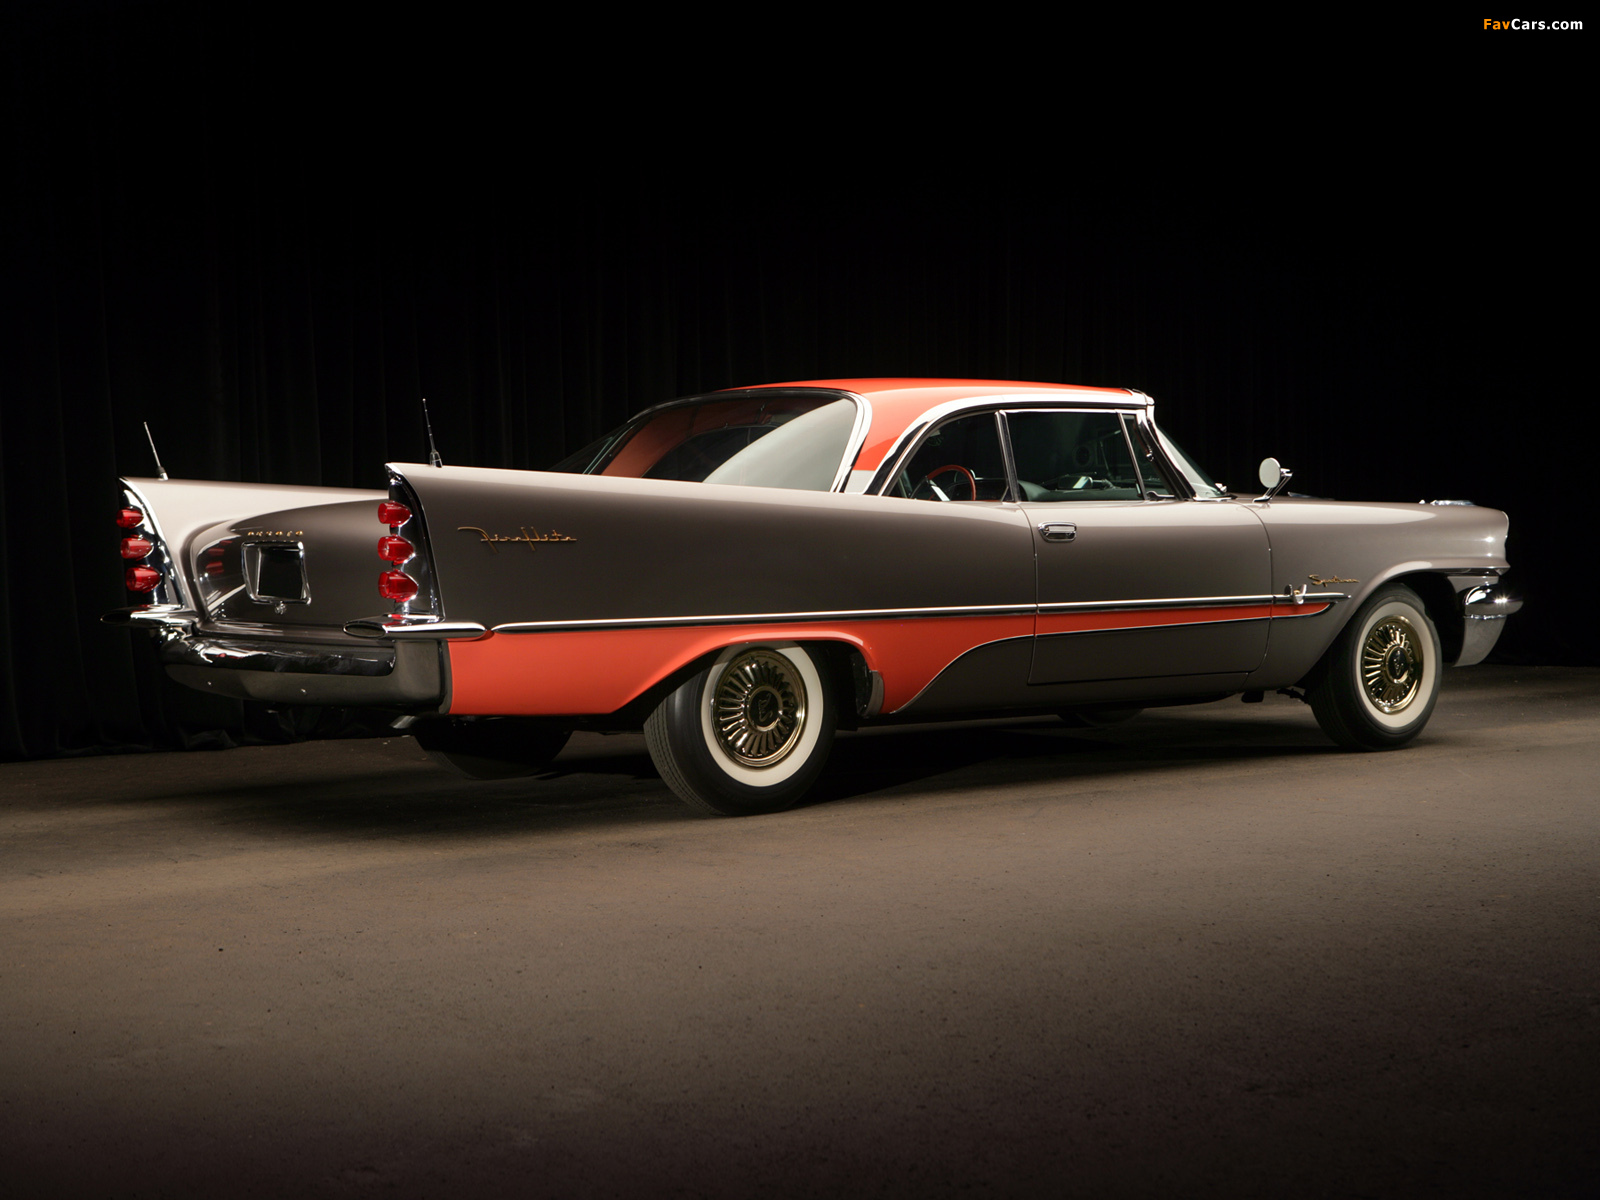 Images Of Desoto Fireflite 2 Door Hardtop 1957 1600x1200